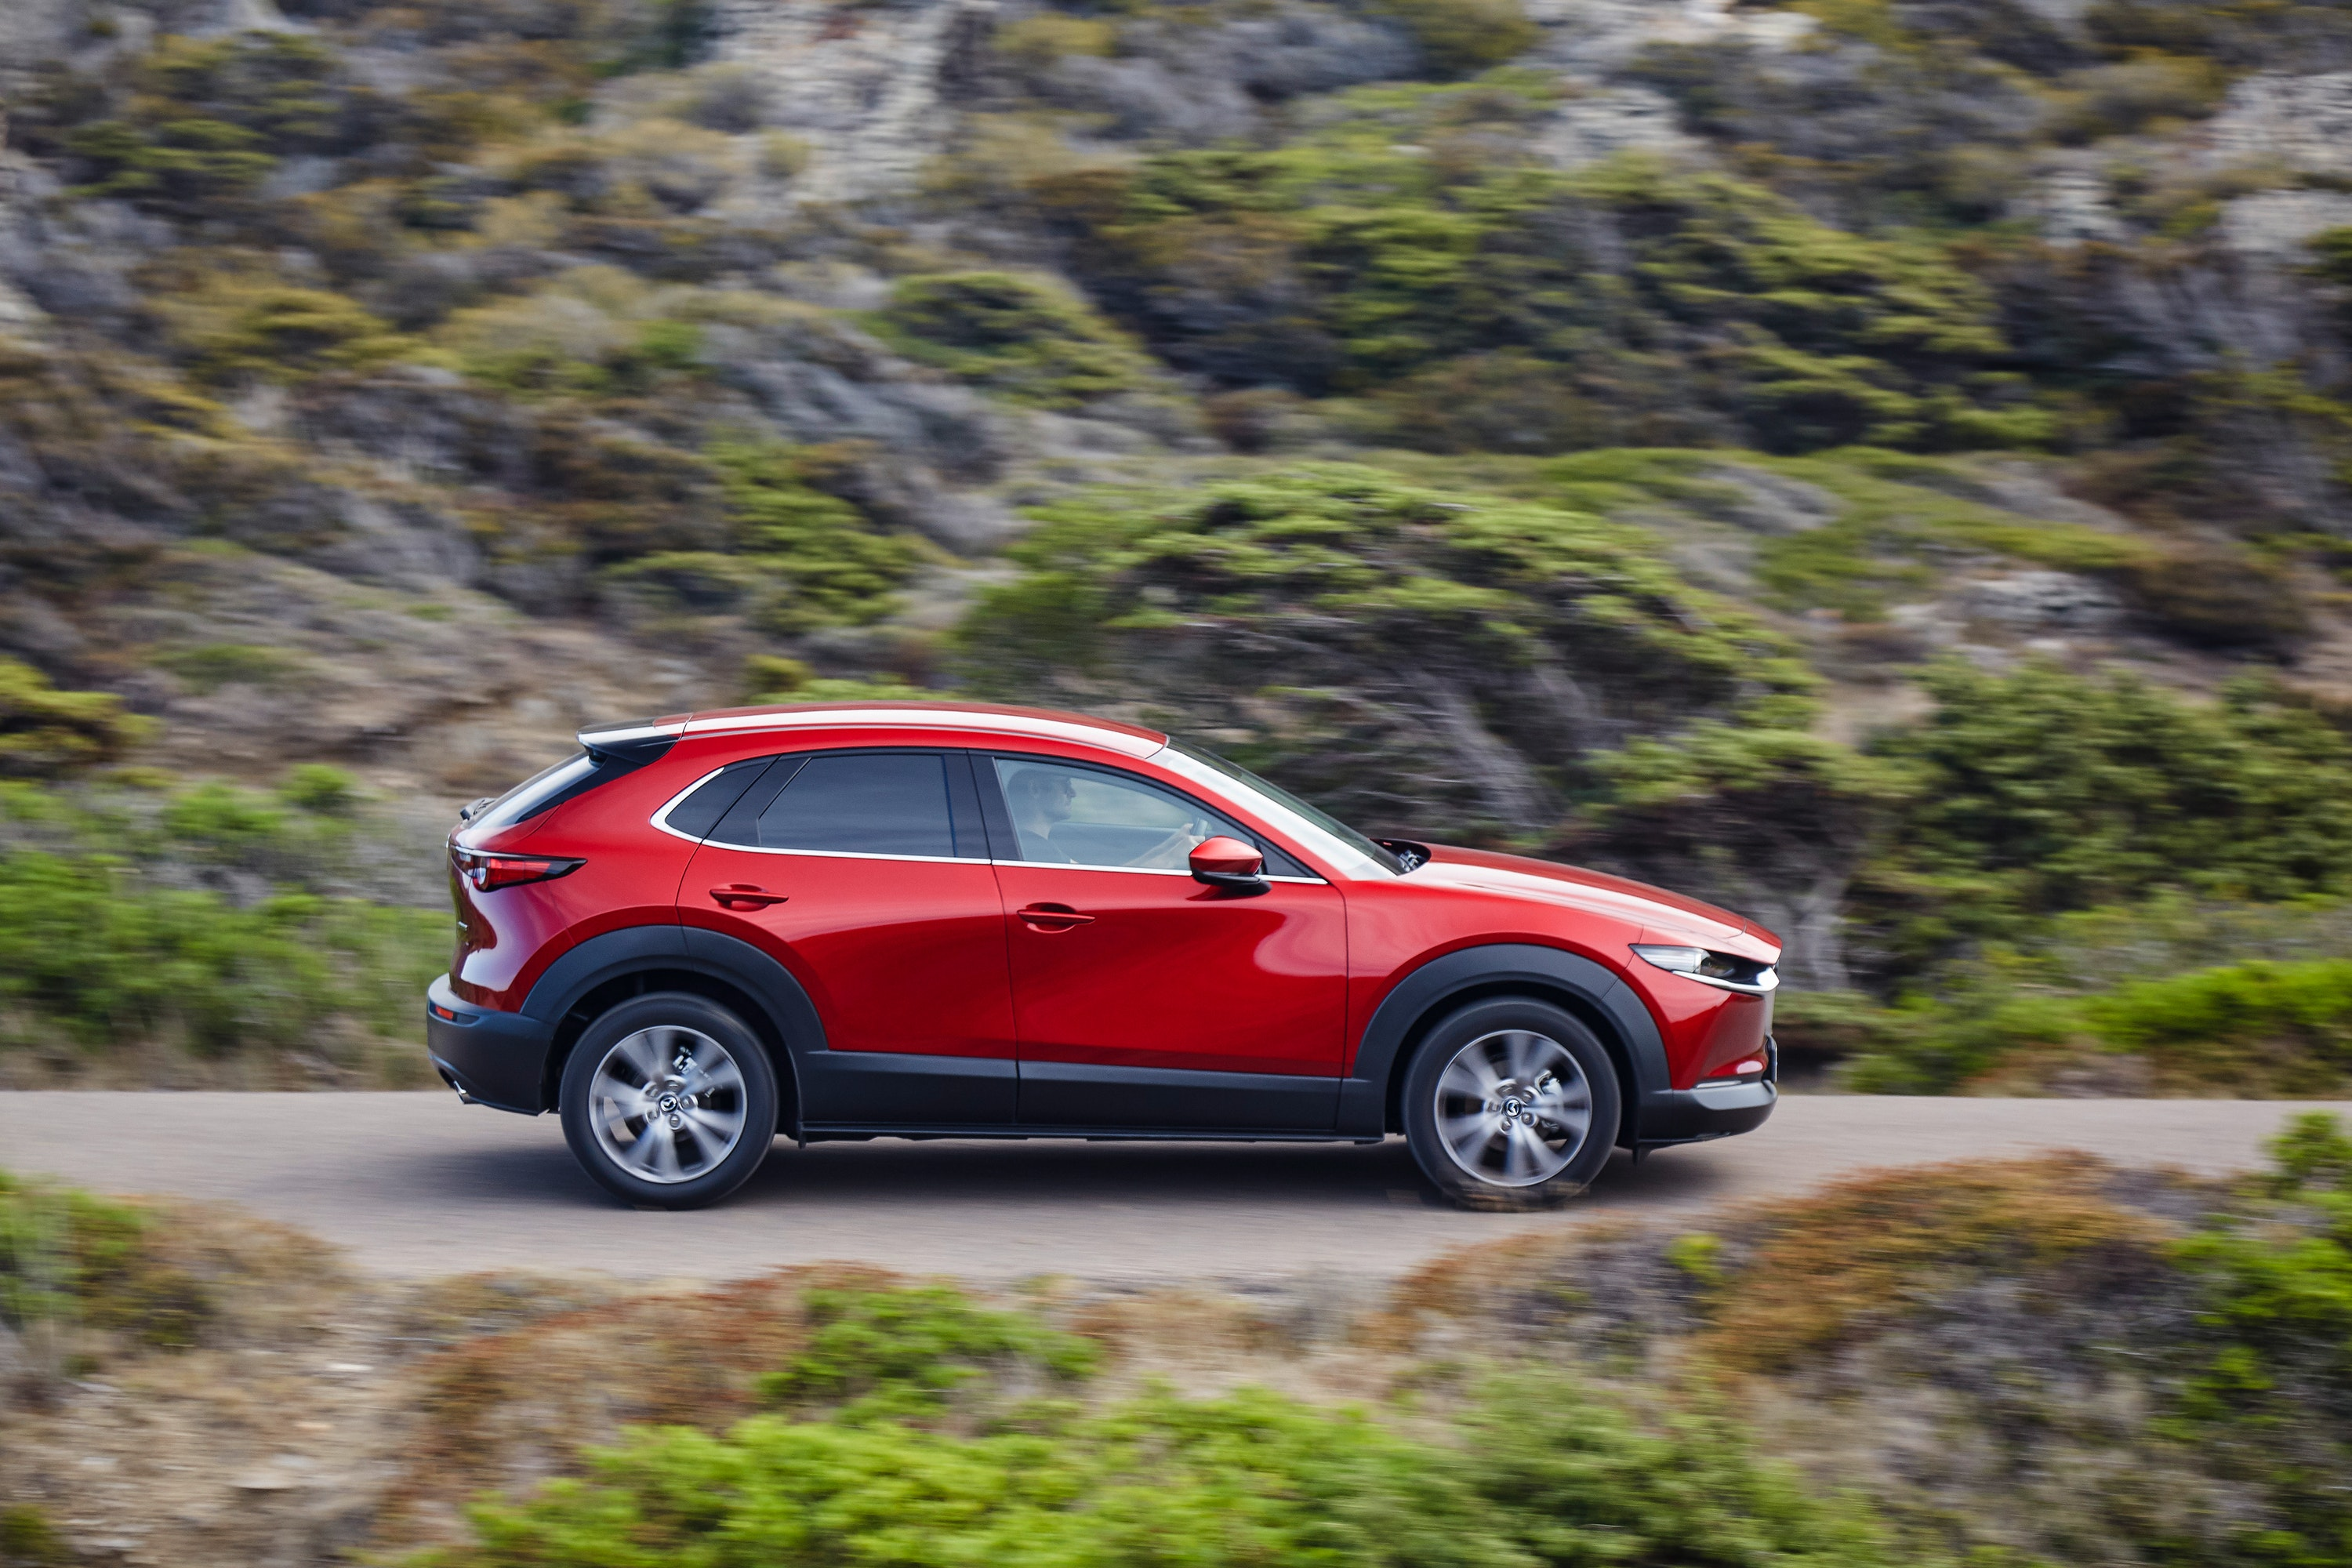 Side view of Mazda CX-30 driving on a road